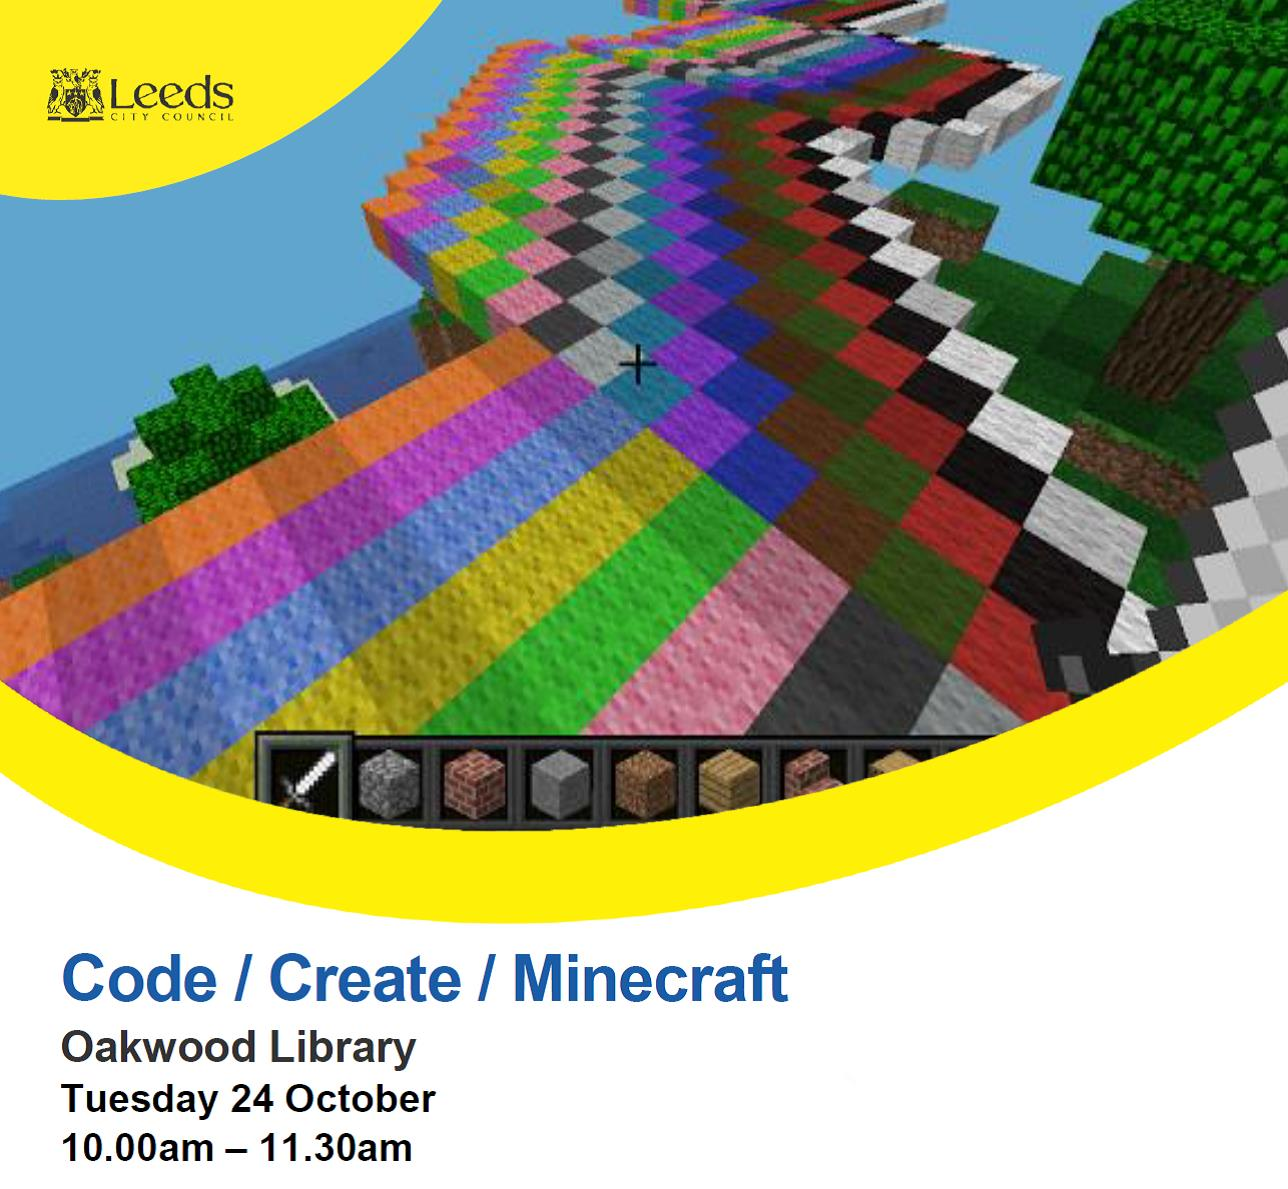 Code Create Minecraft at Oakwood Library event tickets from